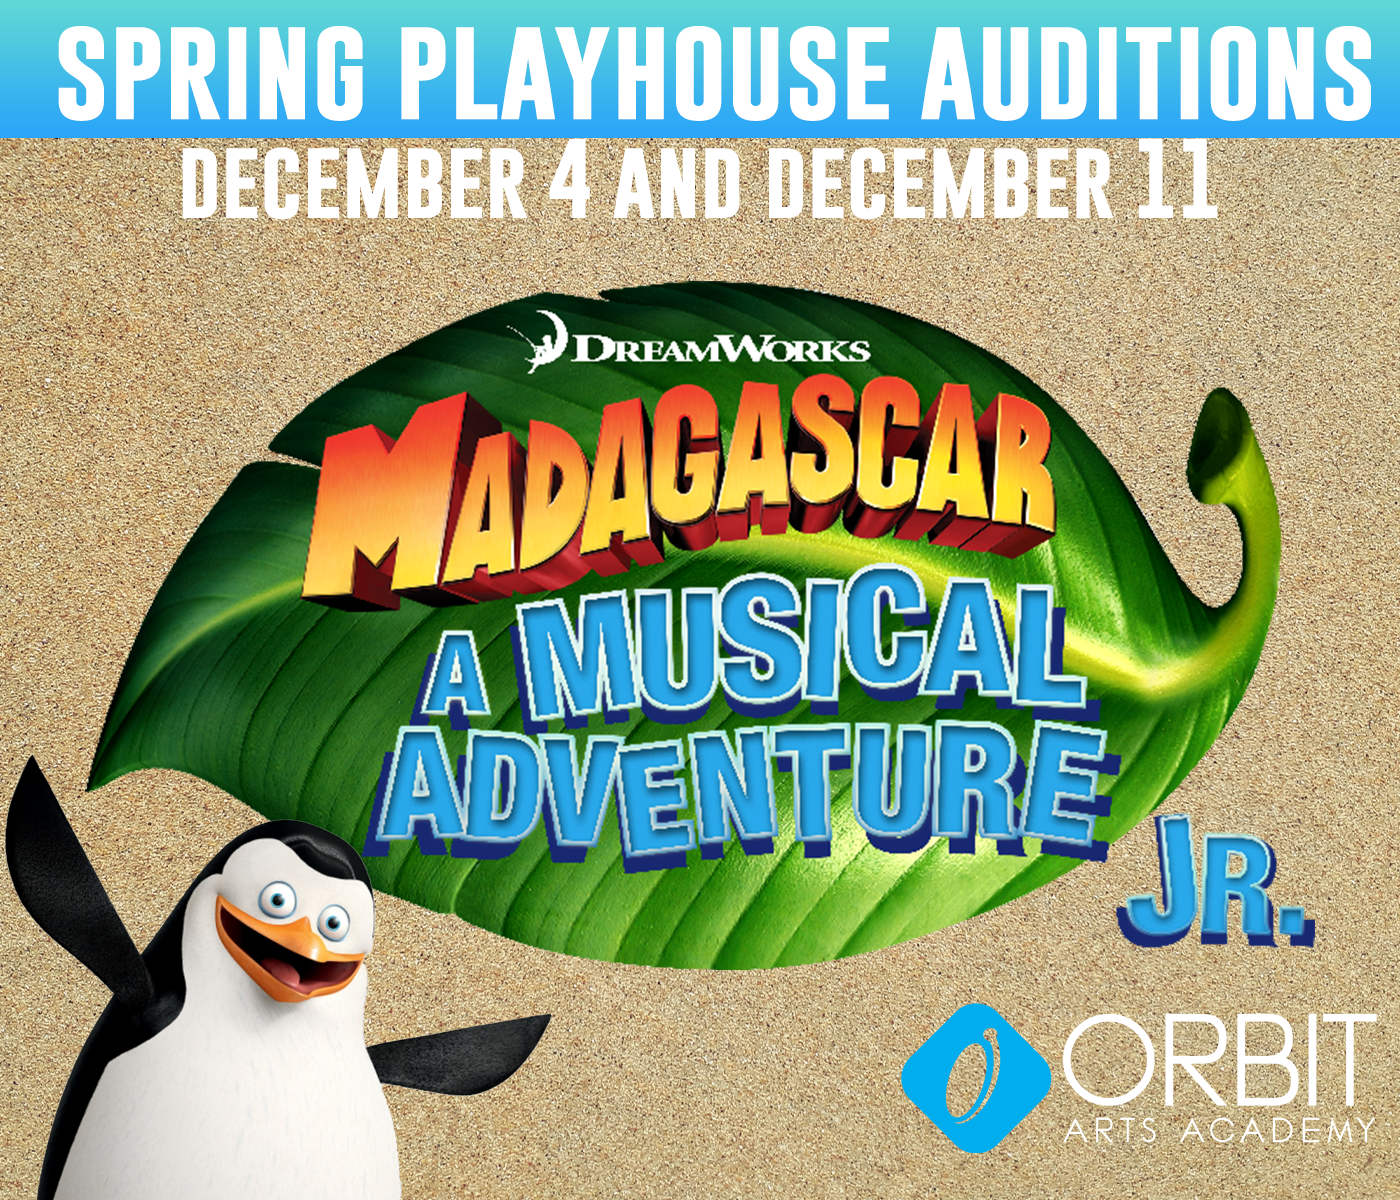 PLAYhouse Auditions Spring 2022